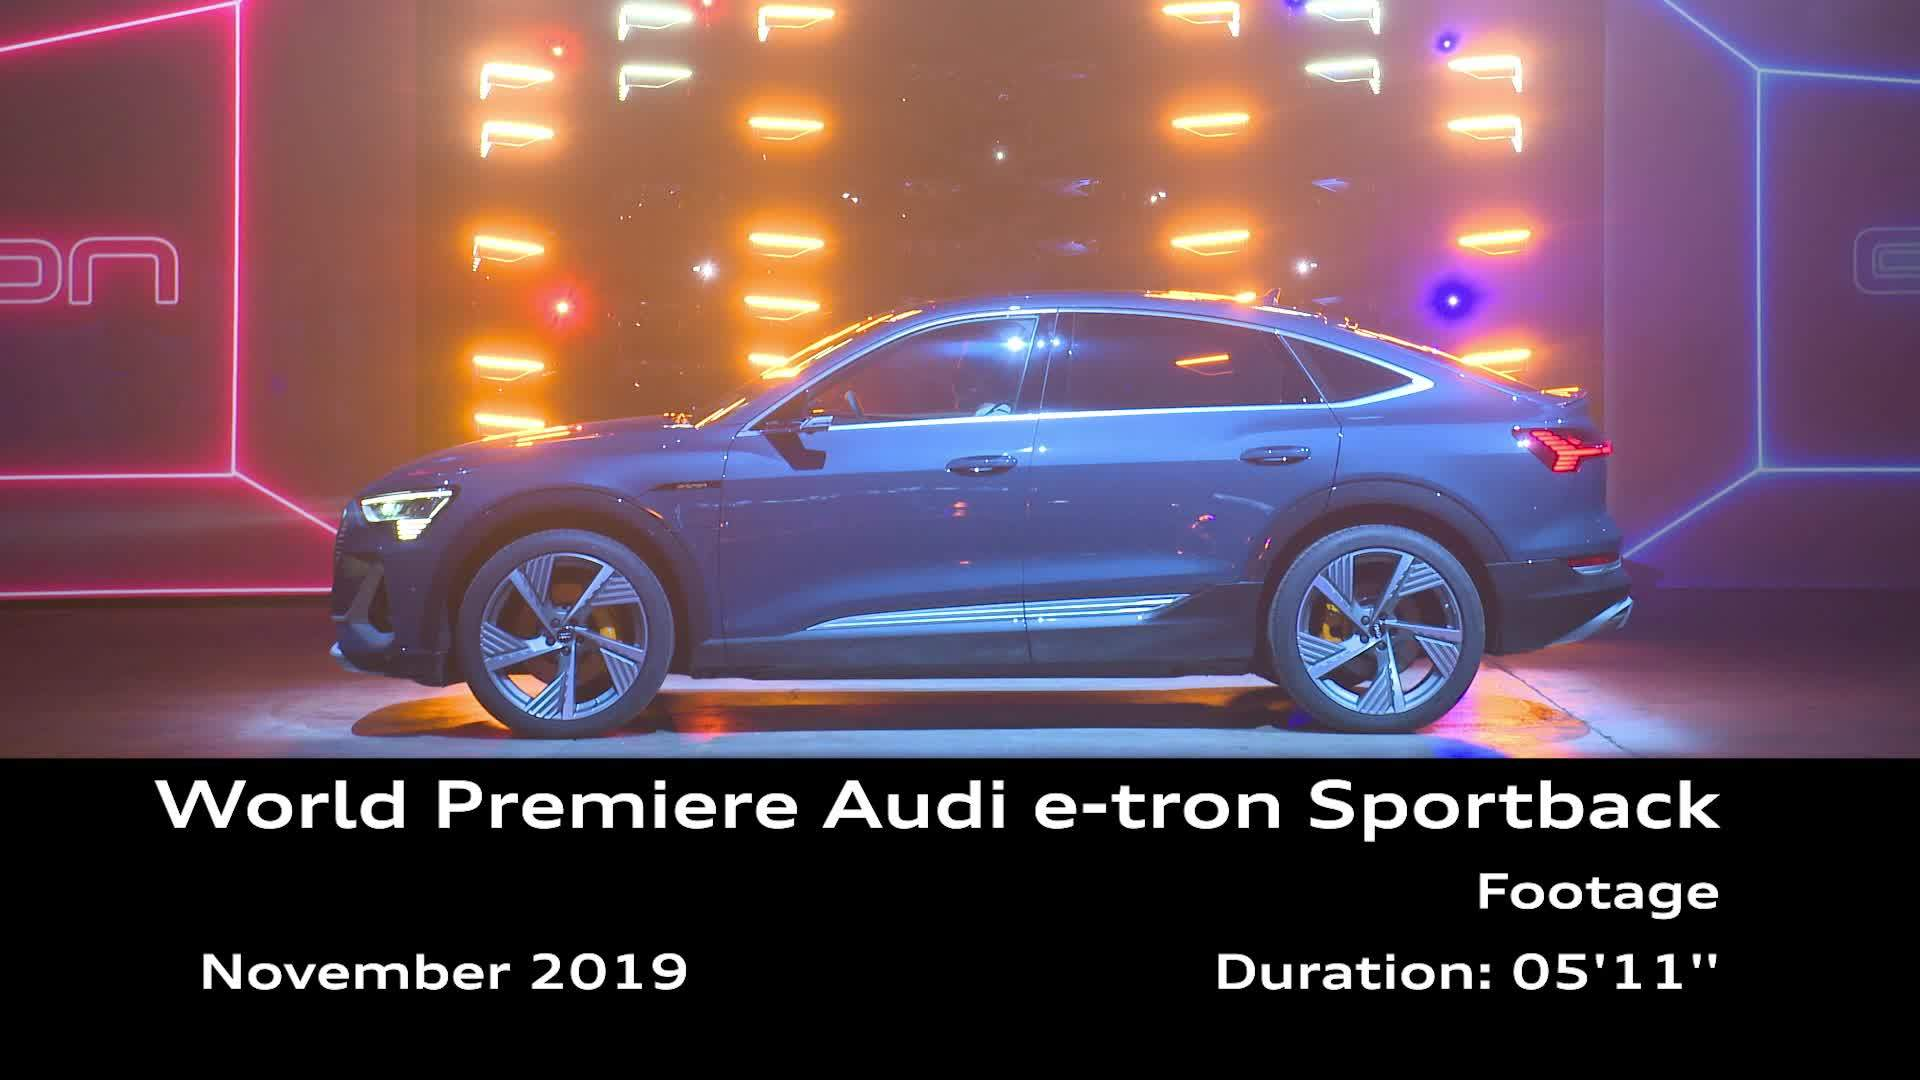 Footage: world premiere of the Audi e-tron Sportback in Los Angeles